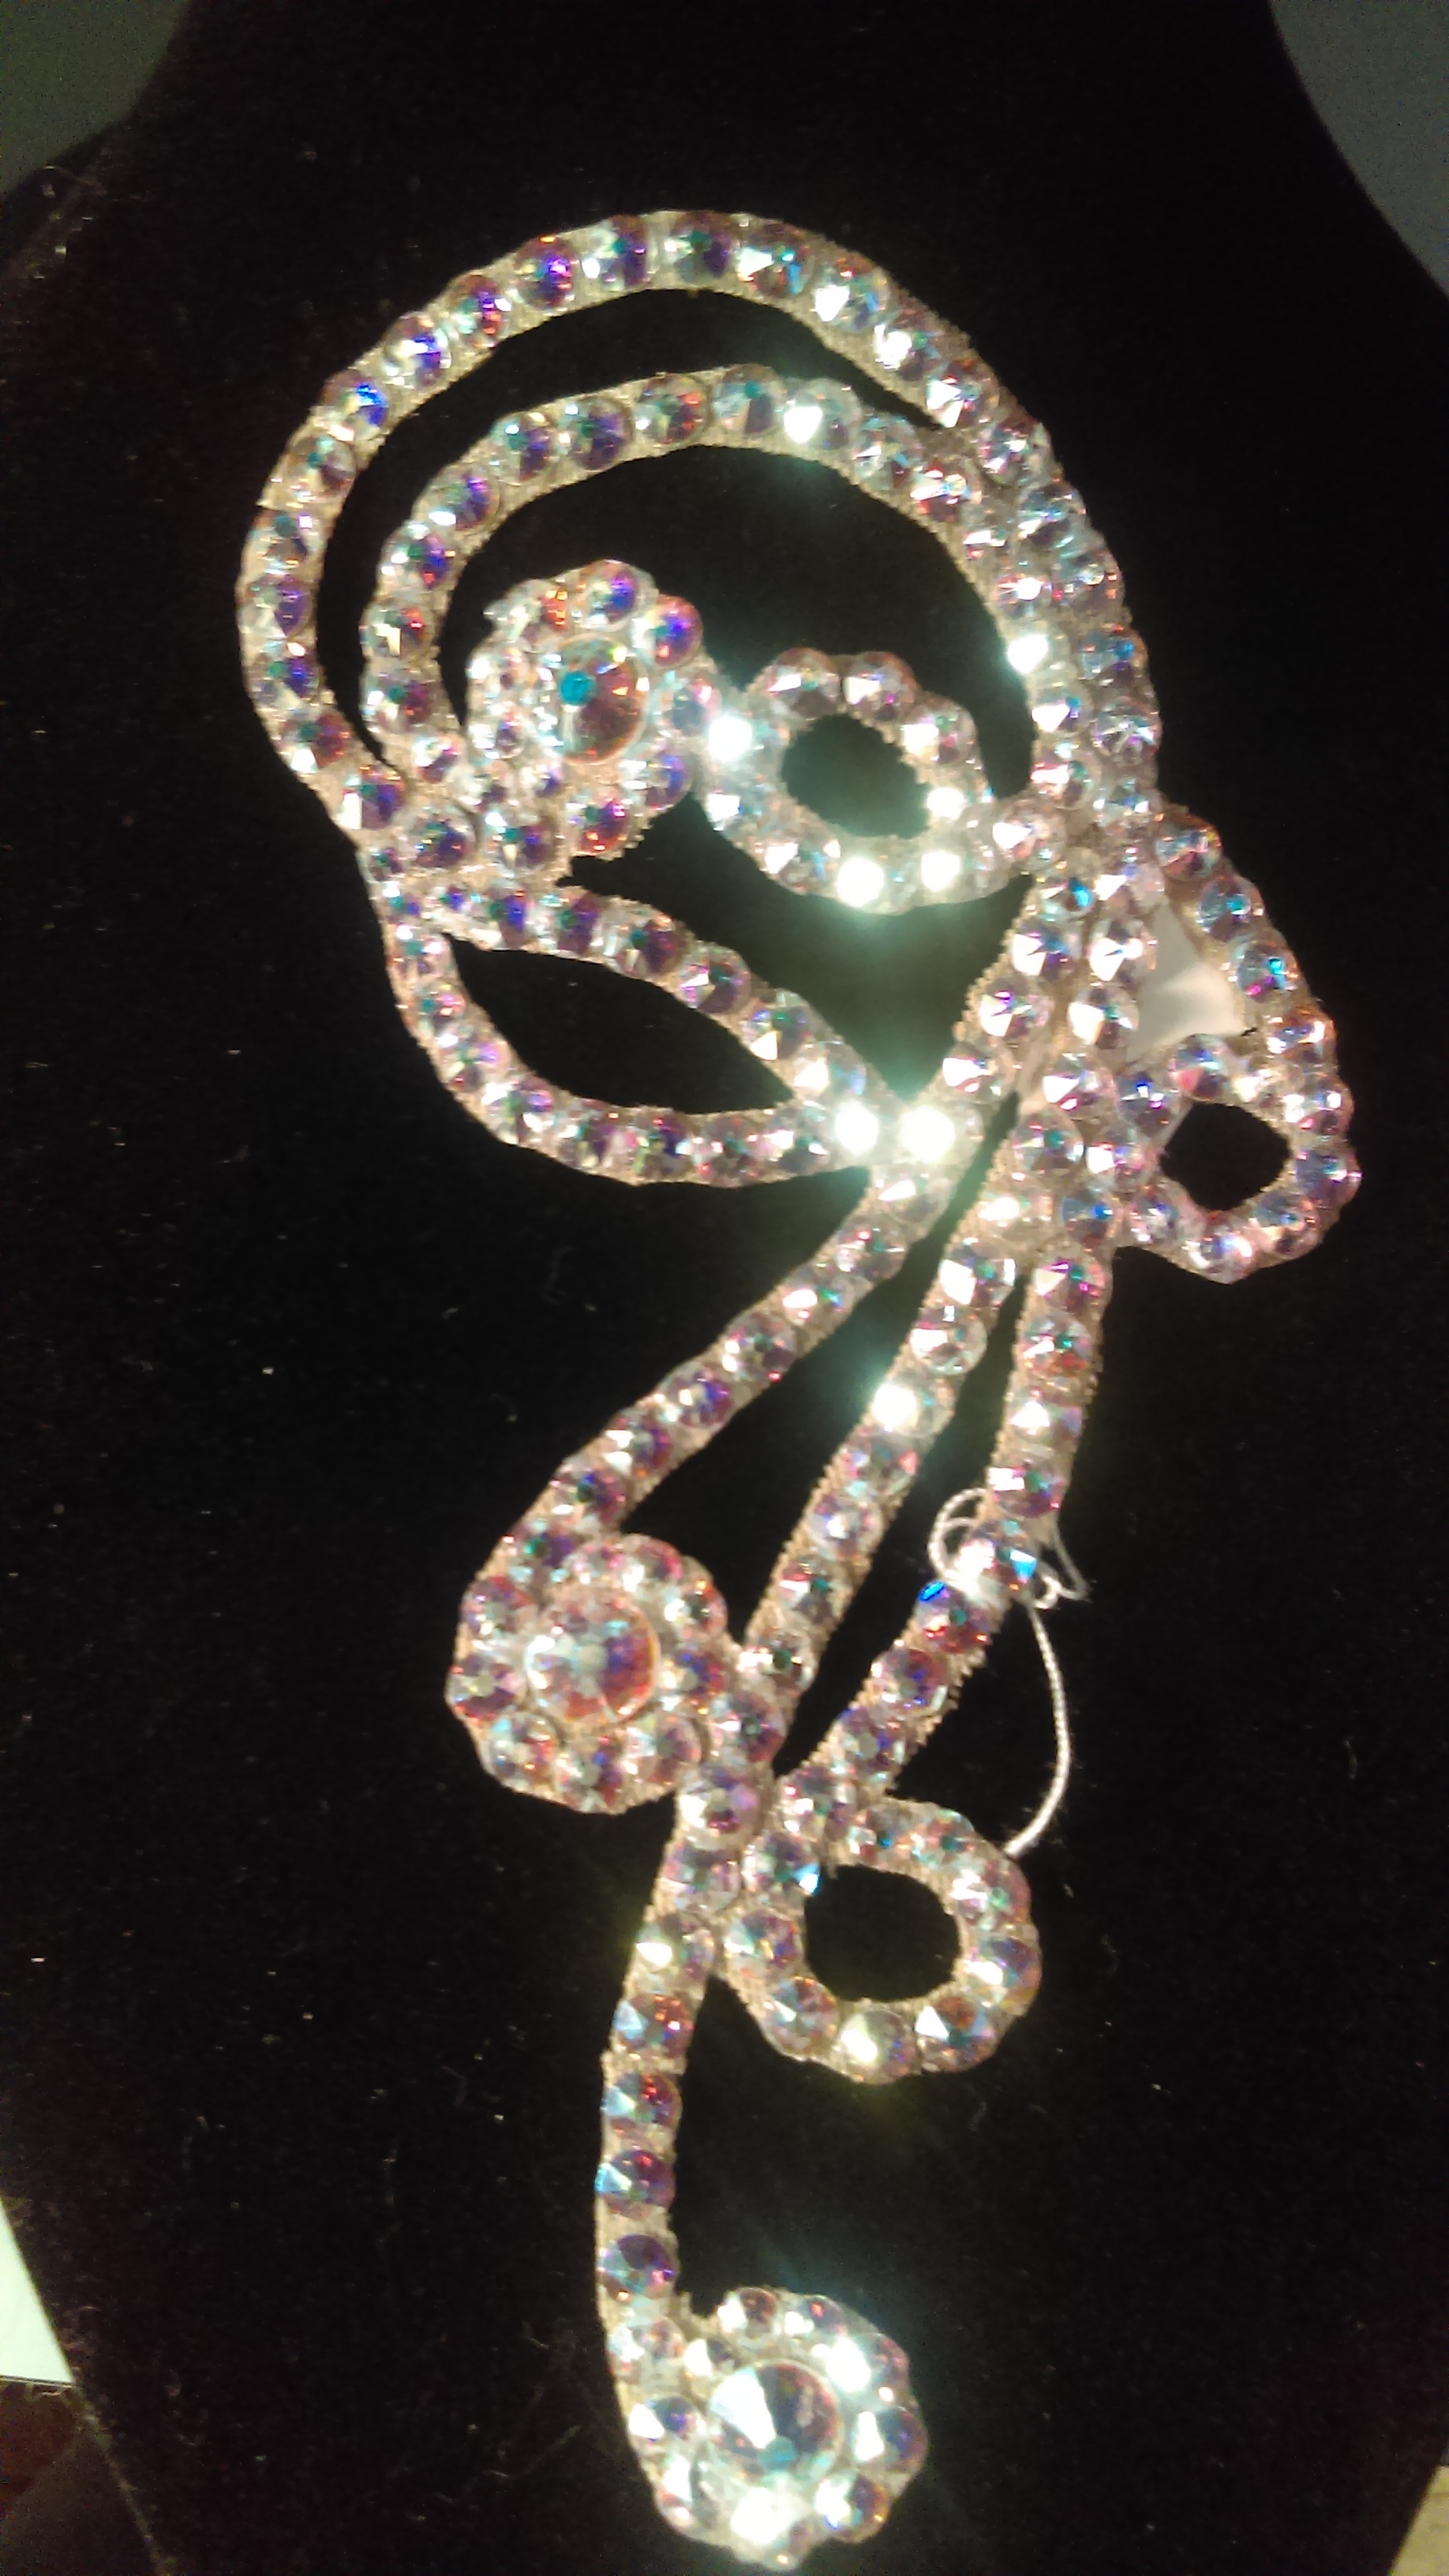 Hair accessory with swarovsky crystals